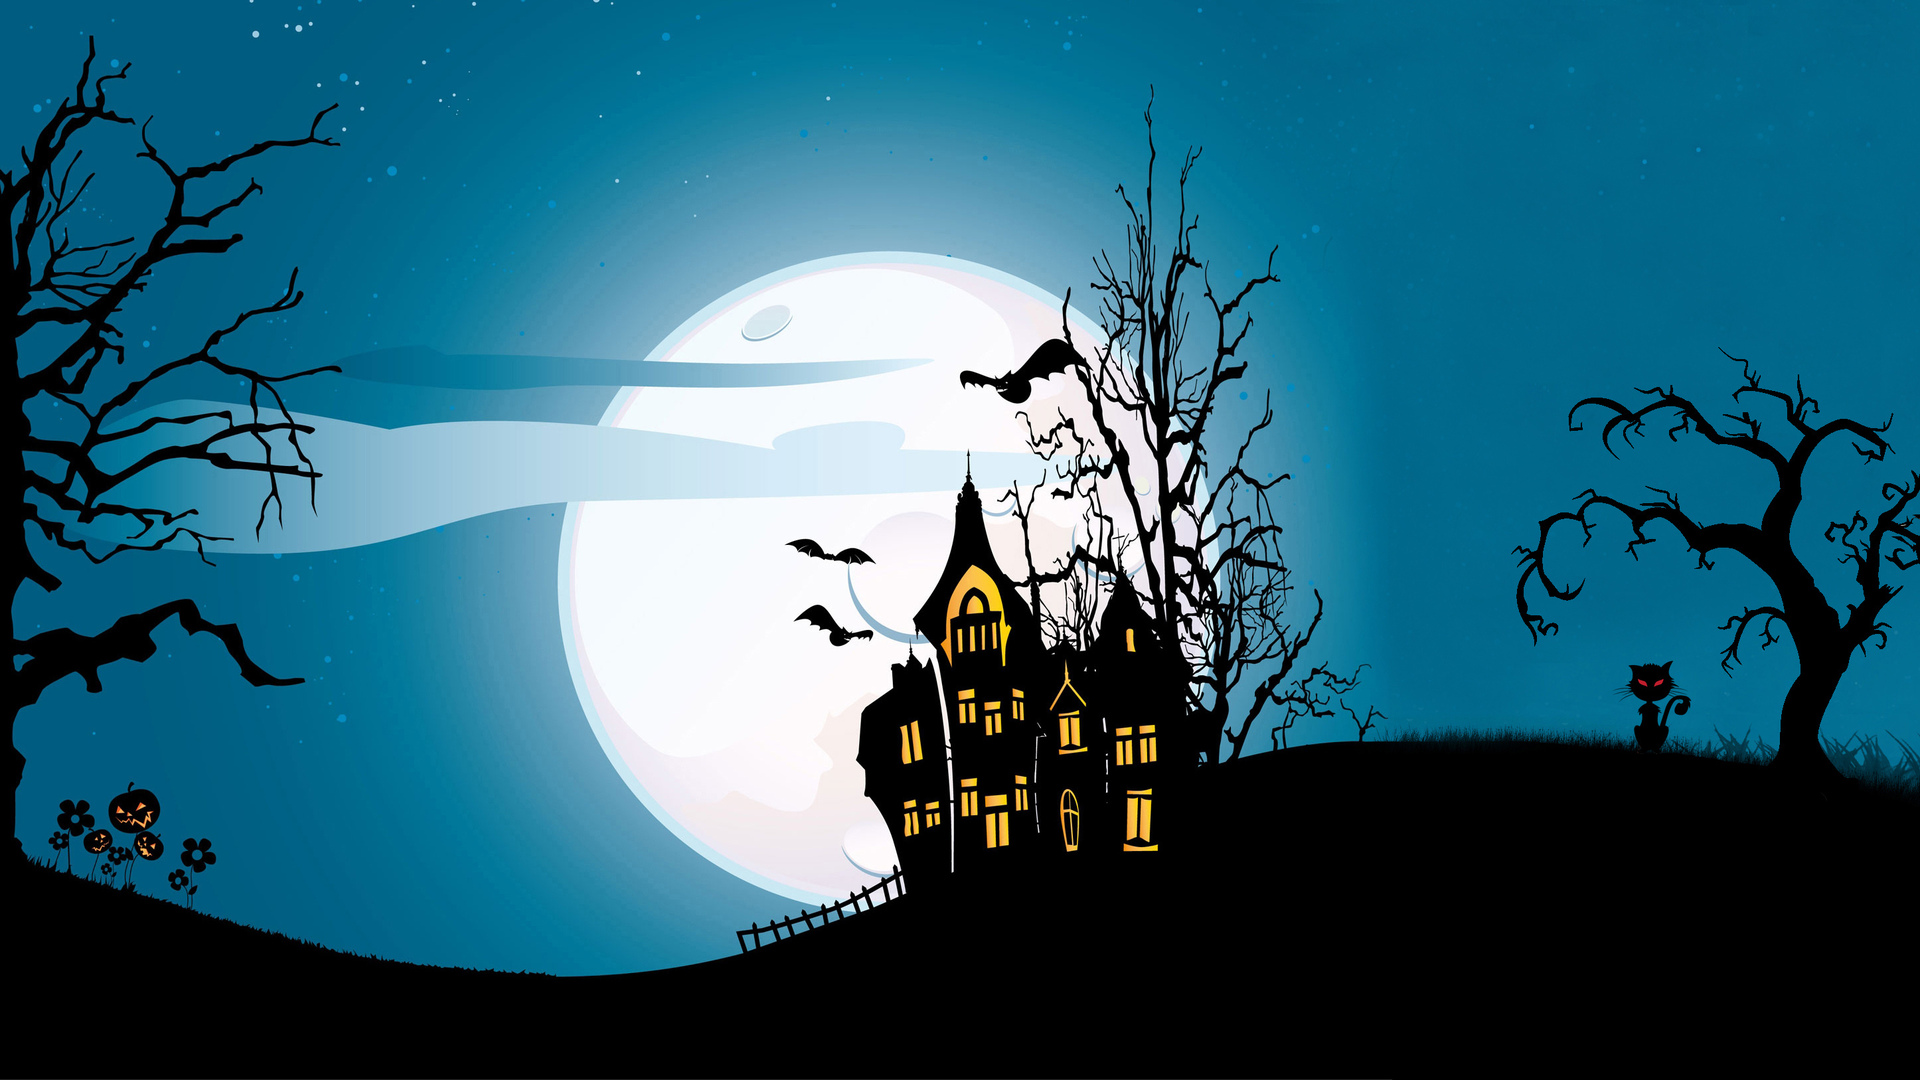 trees, castle, vector, evil pumpkin, scary house, holiday halloween, horror, bat, creepy, full moon